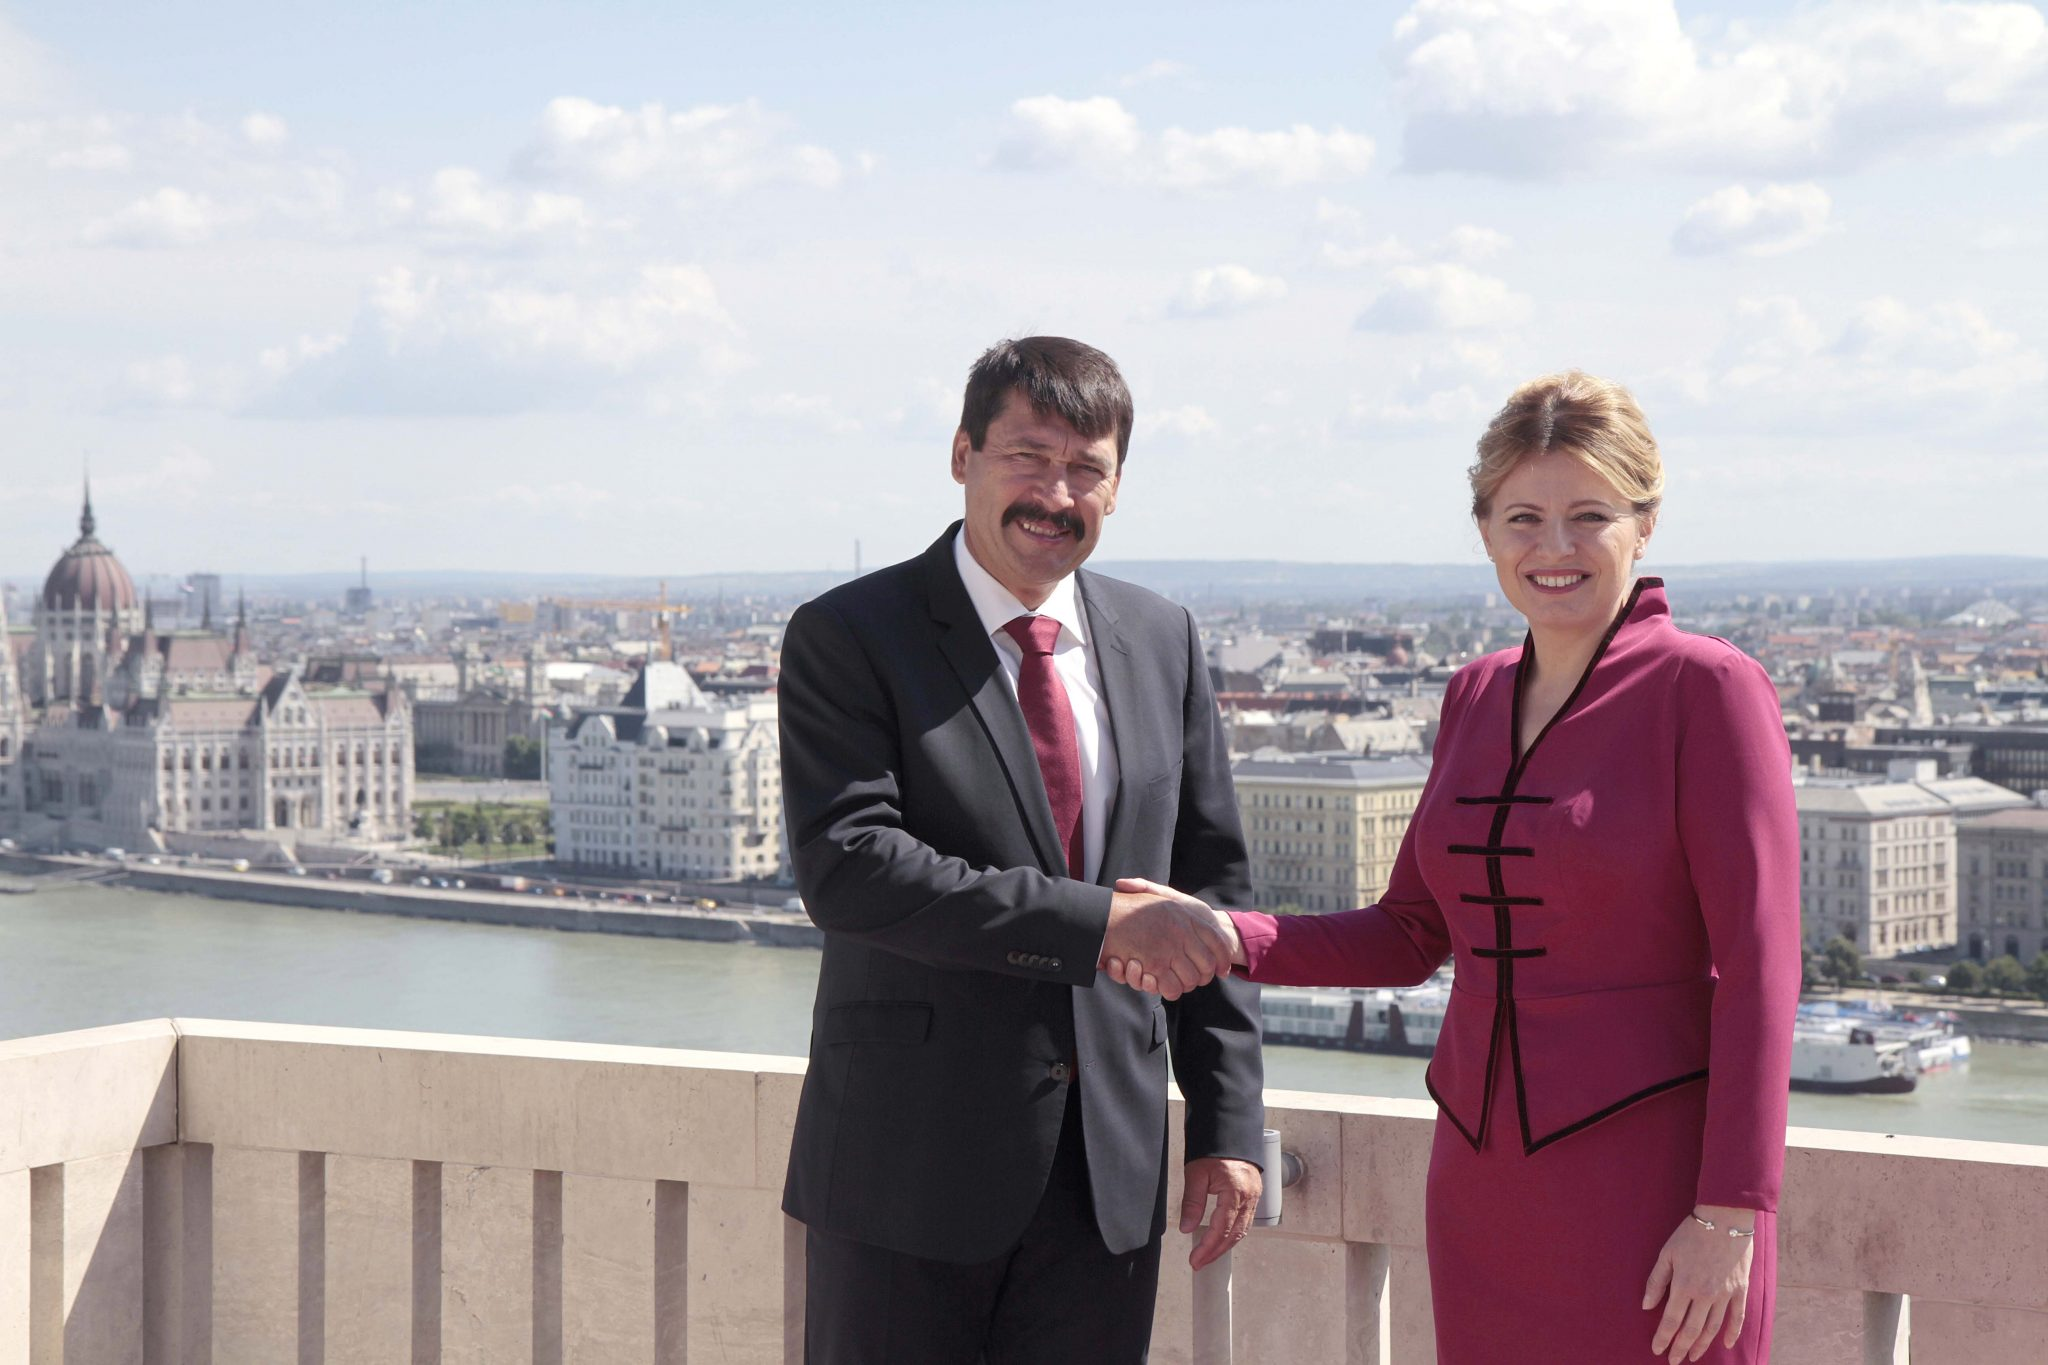 Climate Change, Migration Focus of Hungarian, Slovak Presidents' Talks post's picture